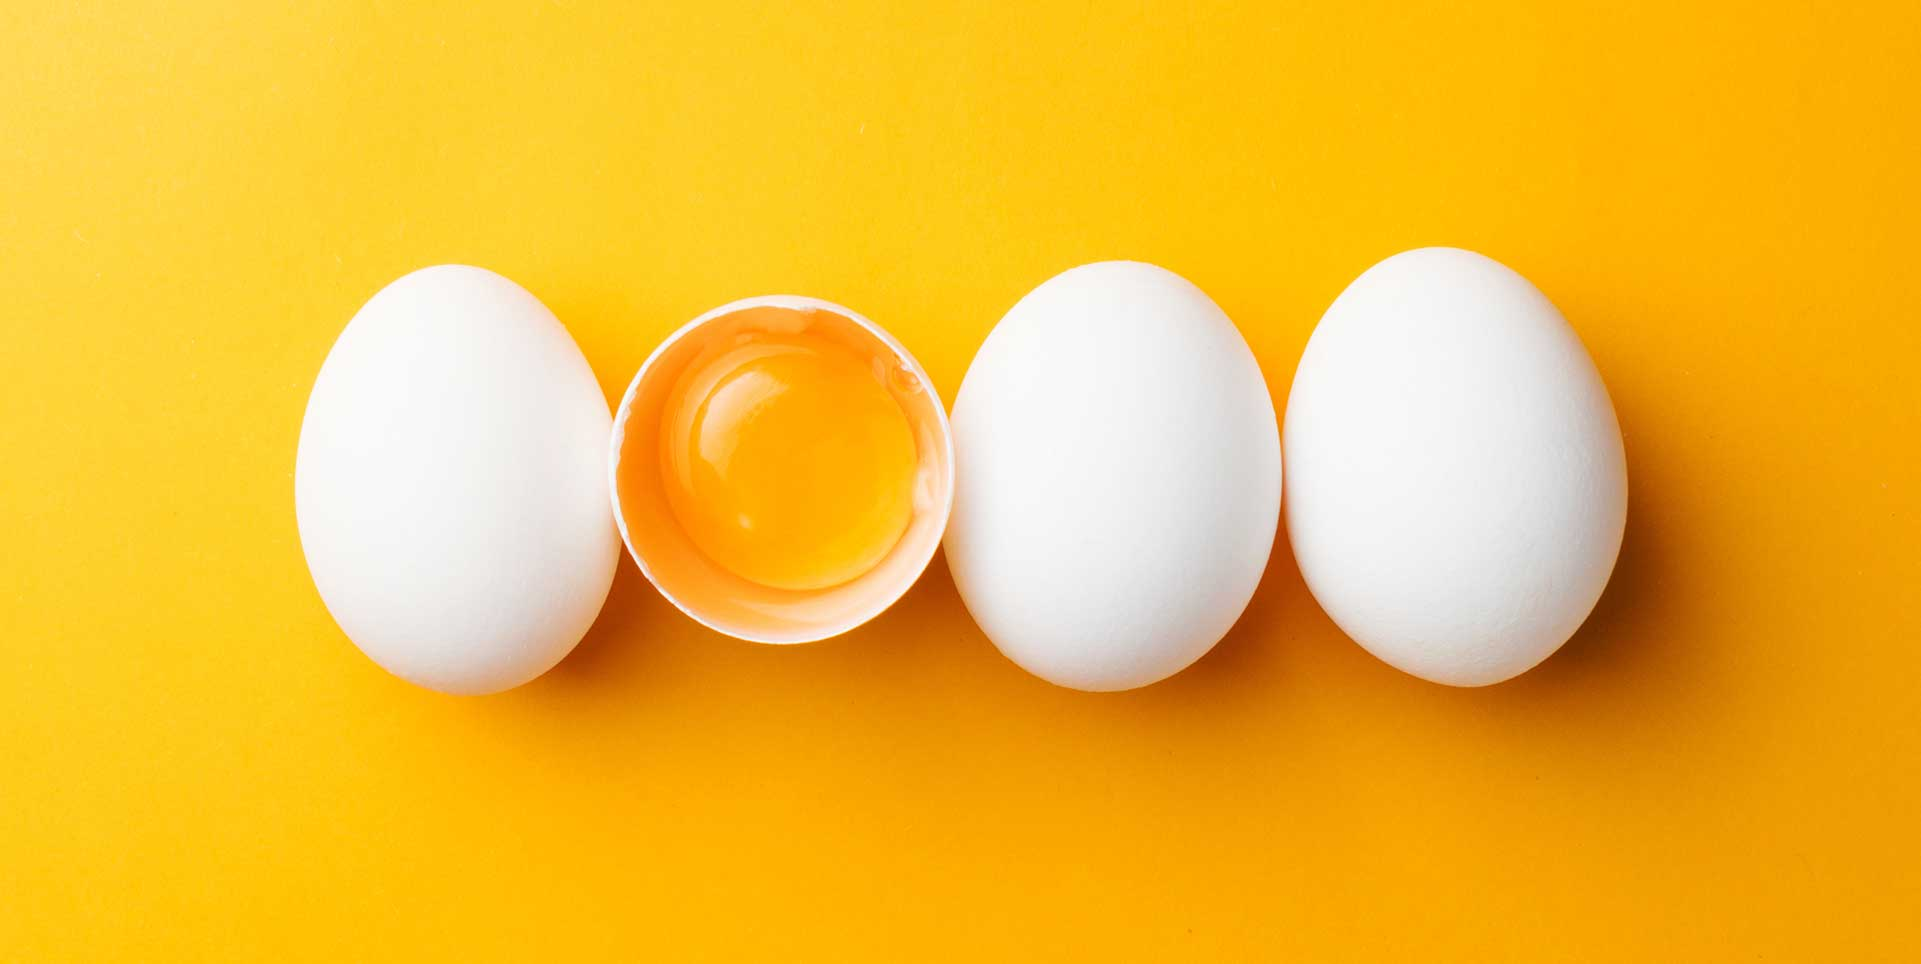 Four eggs in a row against a yellow-orange background